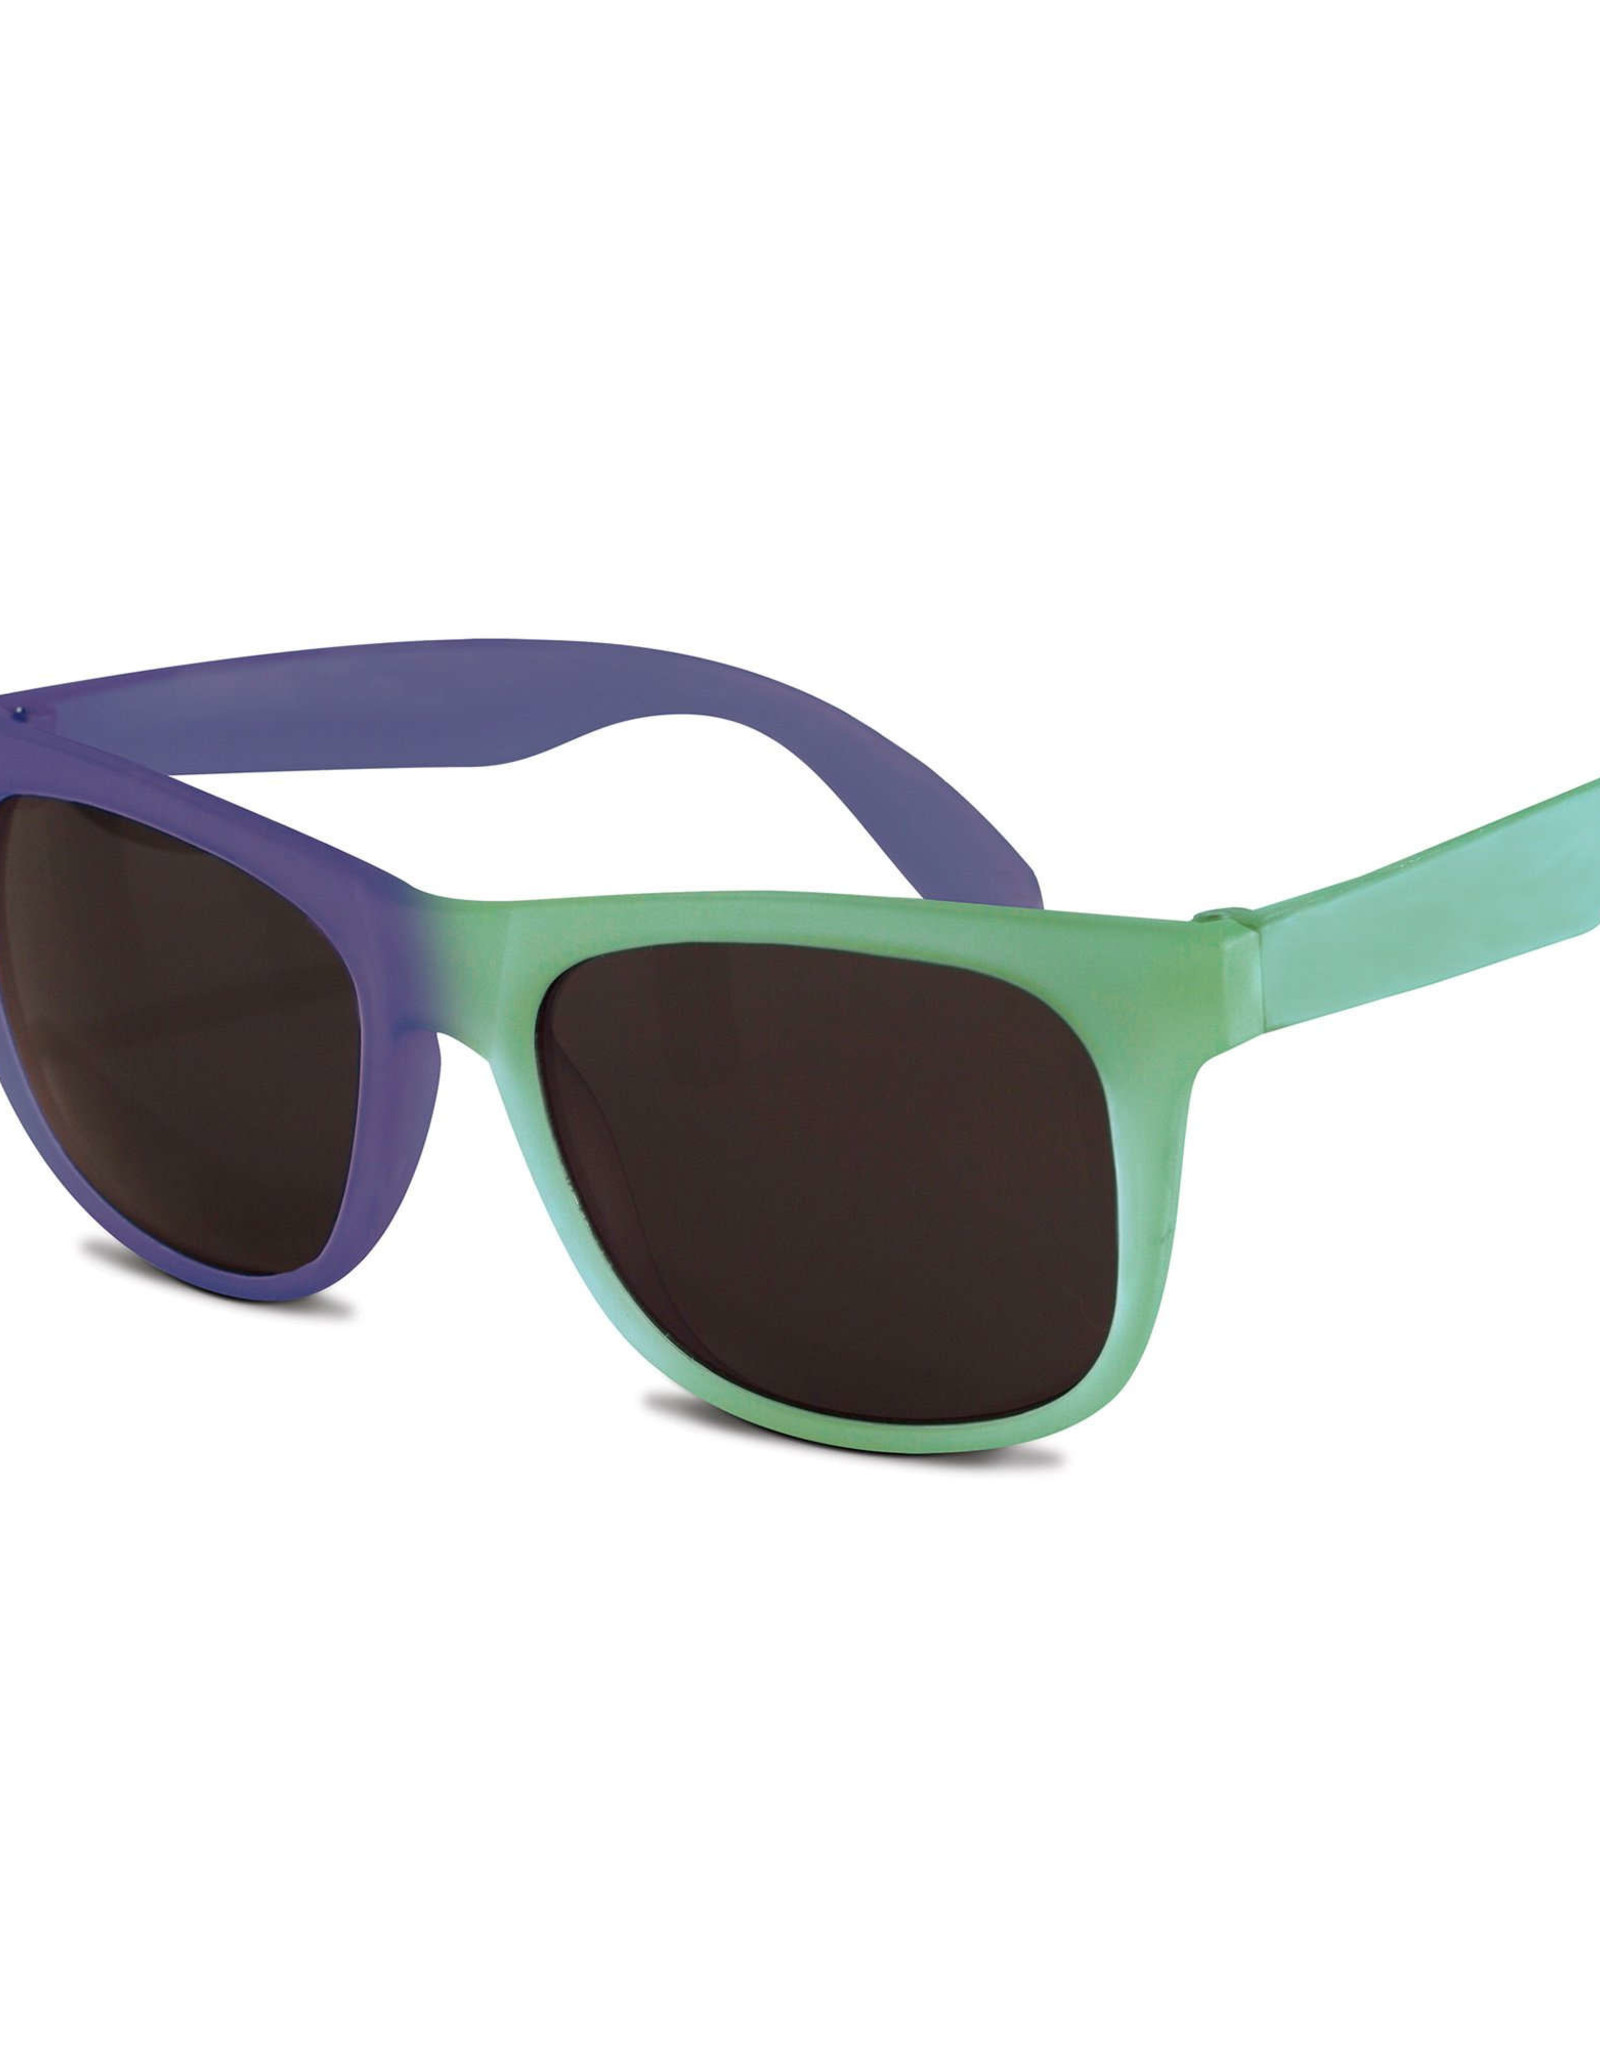 Real Shades Unbreakable Color Changing Sunglasses Green Midnight Blue 2+